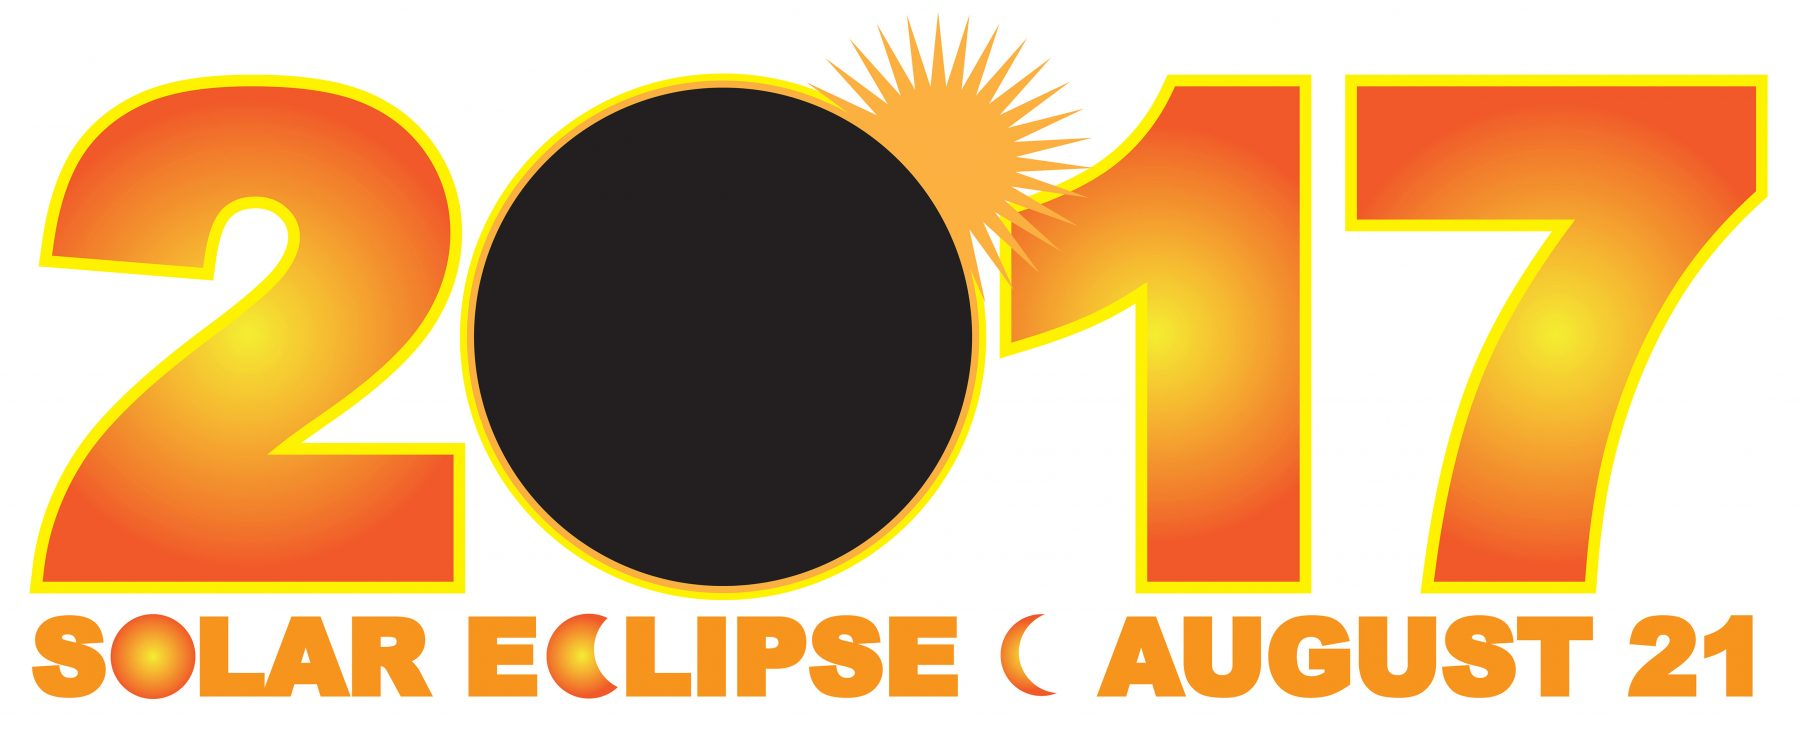 Eclipse Clipart at GetDrawings.com.